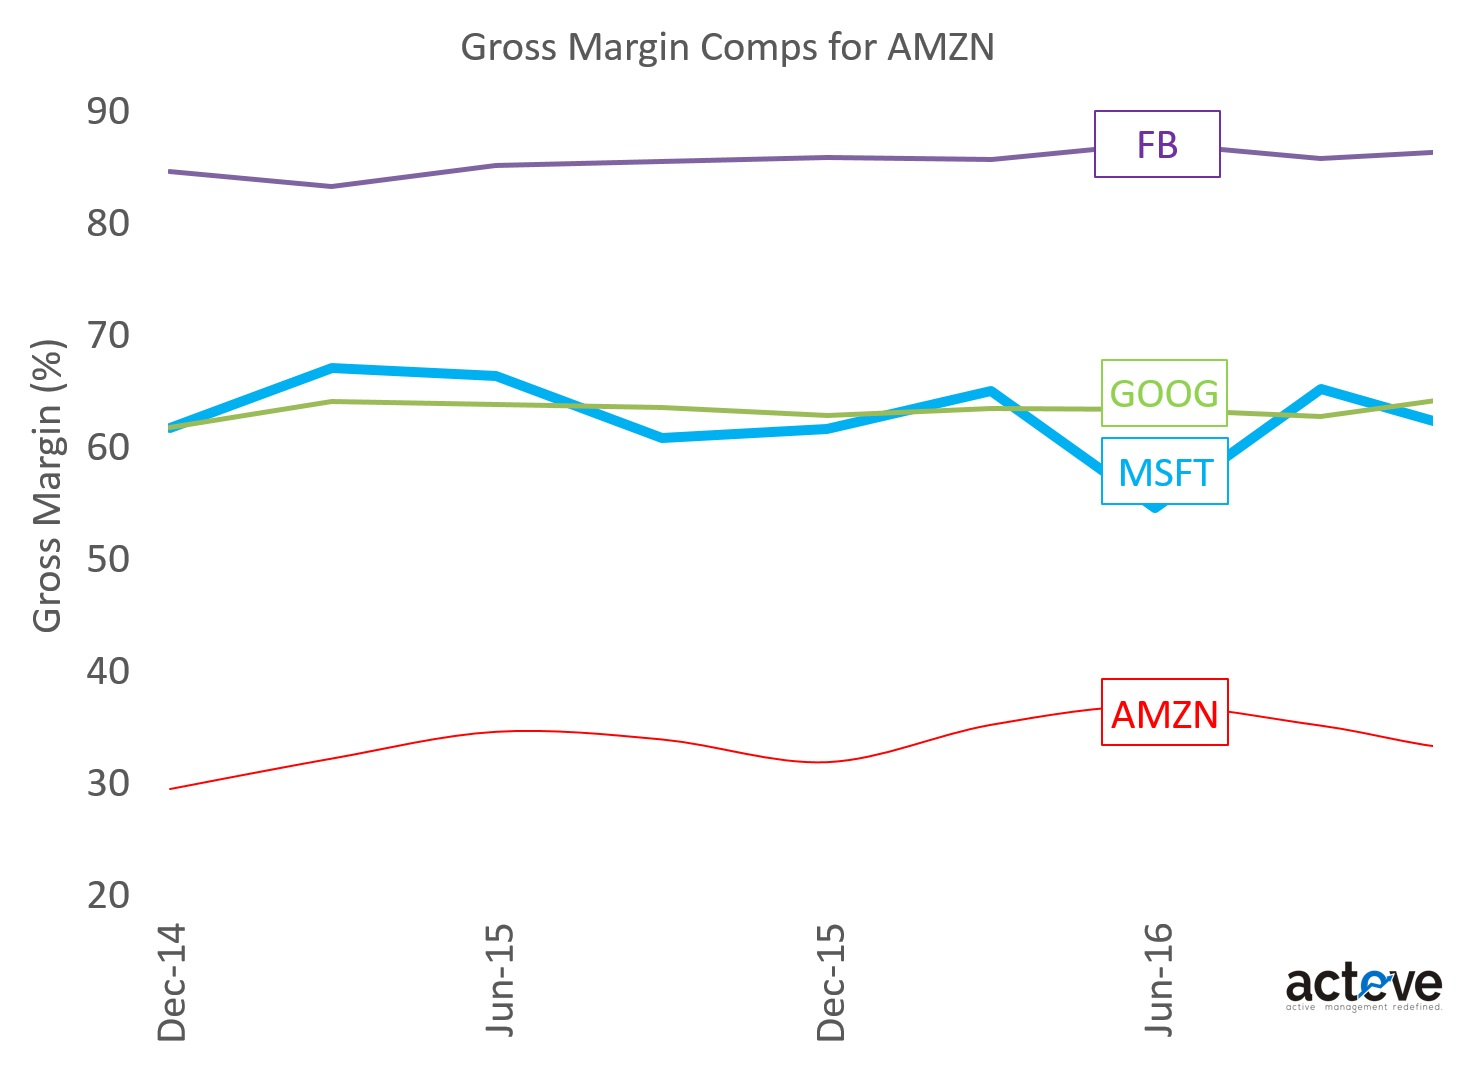 AMZN Gross Margin Comps